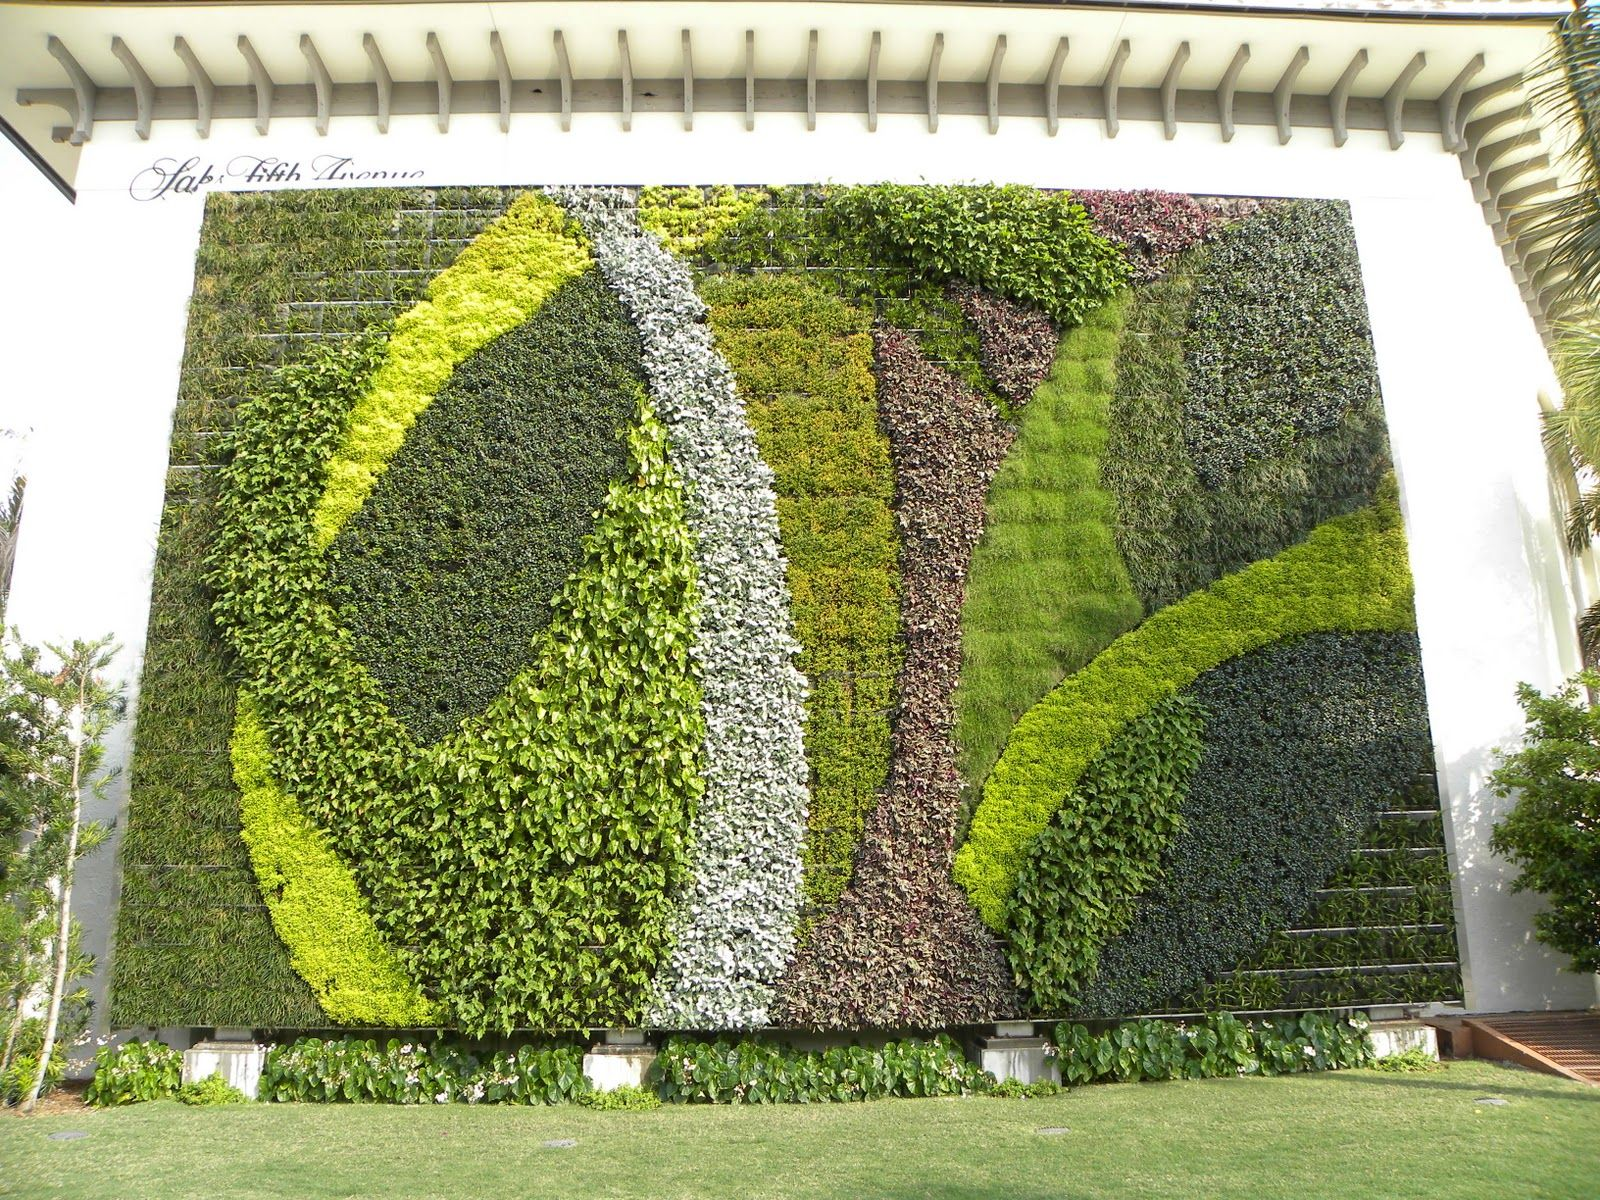 107 Best Living Wall Images On Pinterest | Gardening, Plants And Landscaping